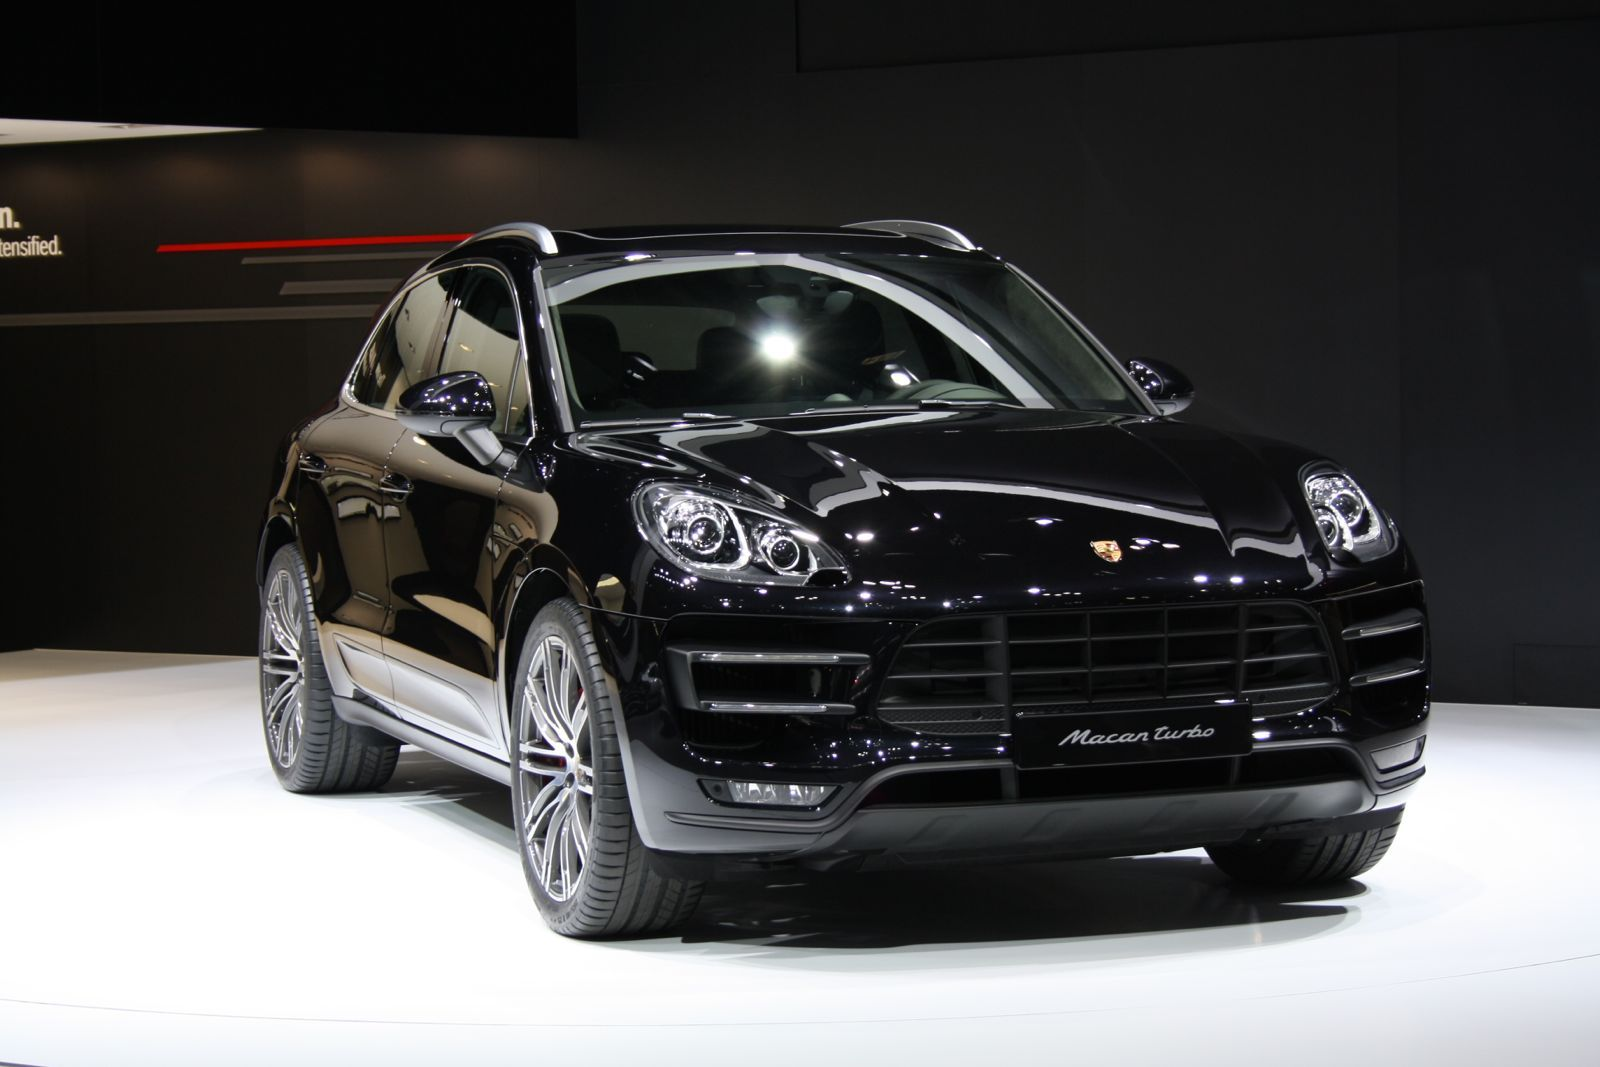 My Next Car Porsche Macan Life Future Ambition Porsche